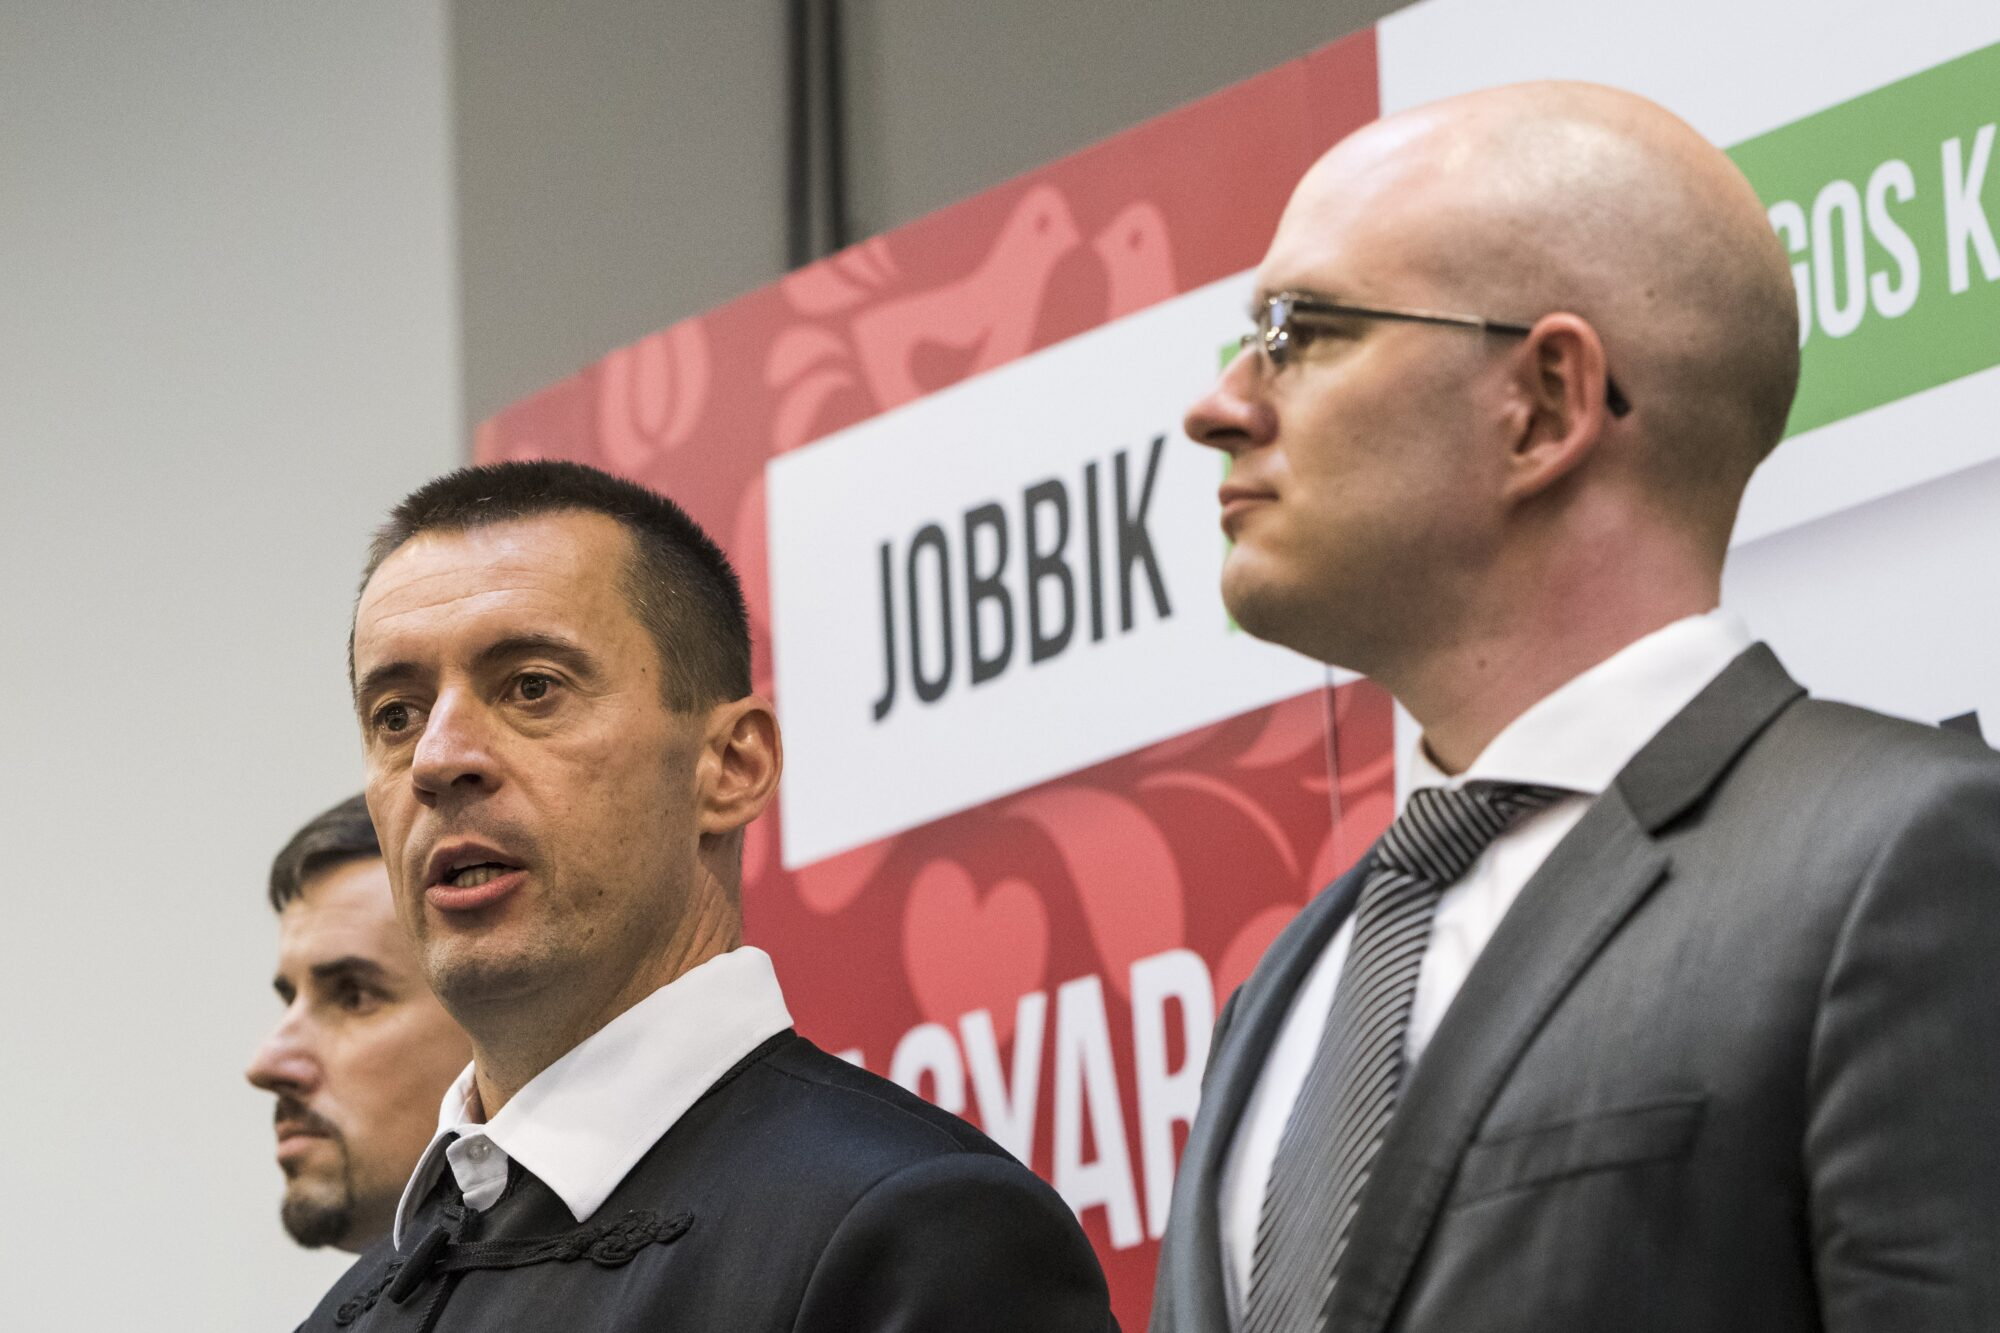 JOBBIK IN CRISIS: CONTINUOUS LOSS OF VOTERS